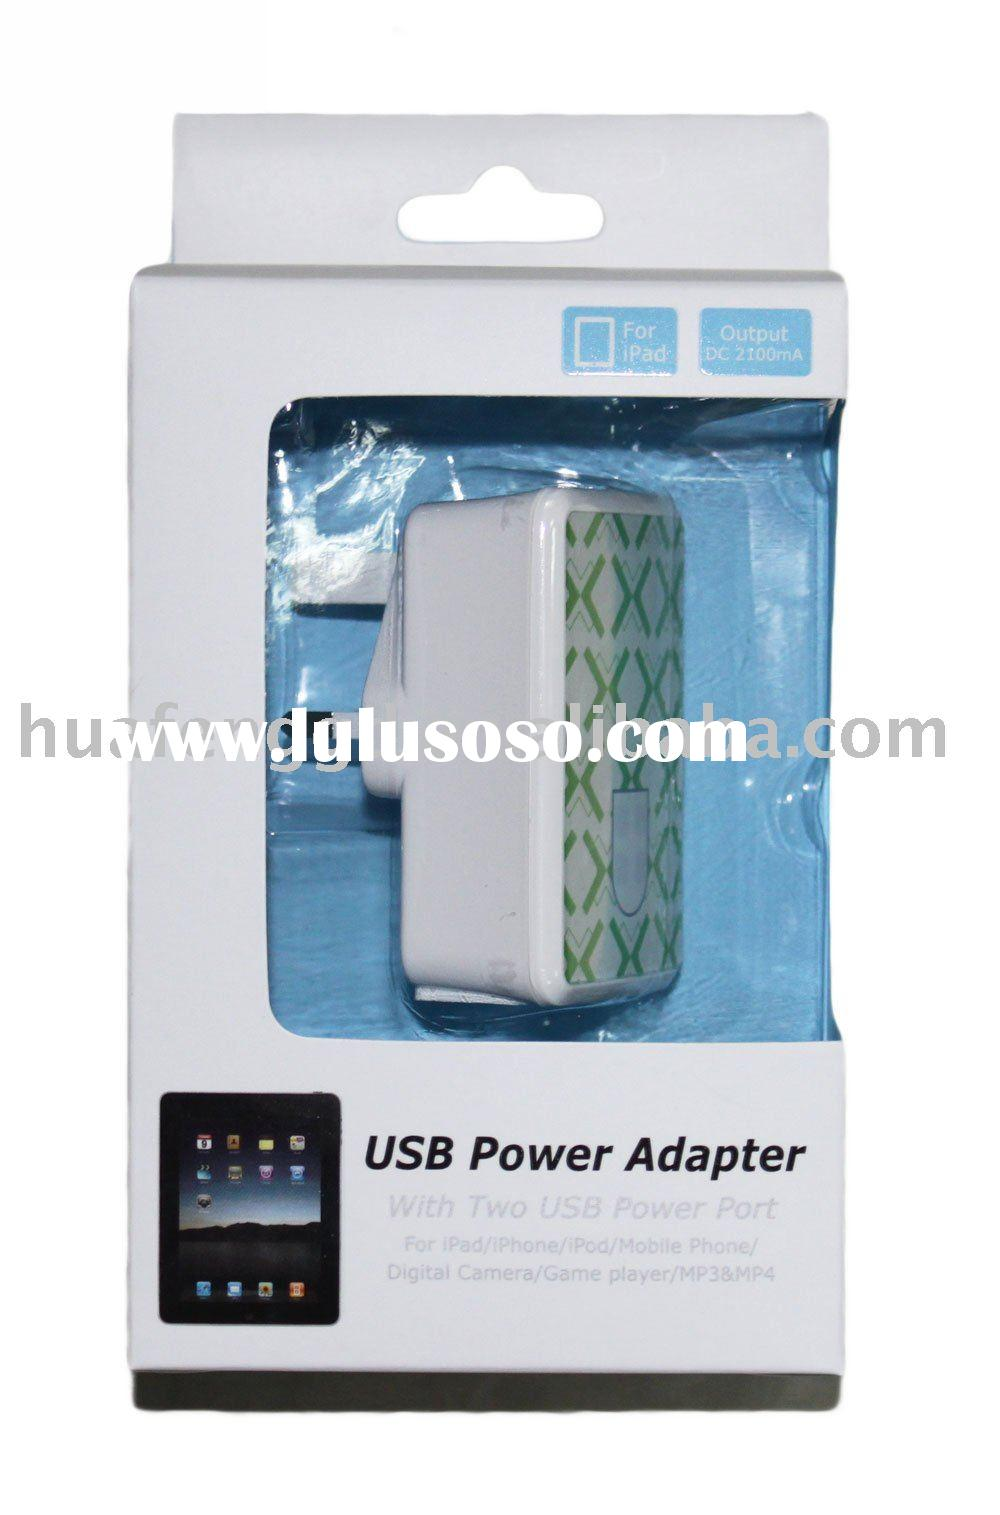 Dual USB Charger for iPad and iPhone and iPod